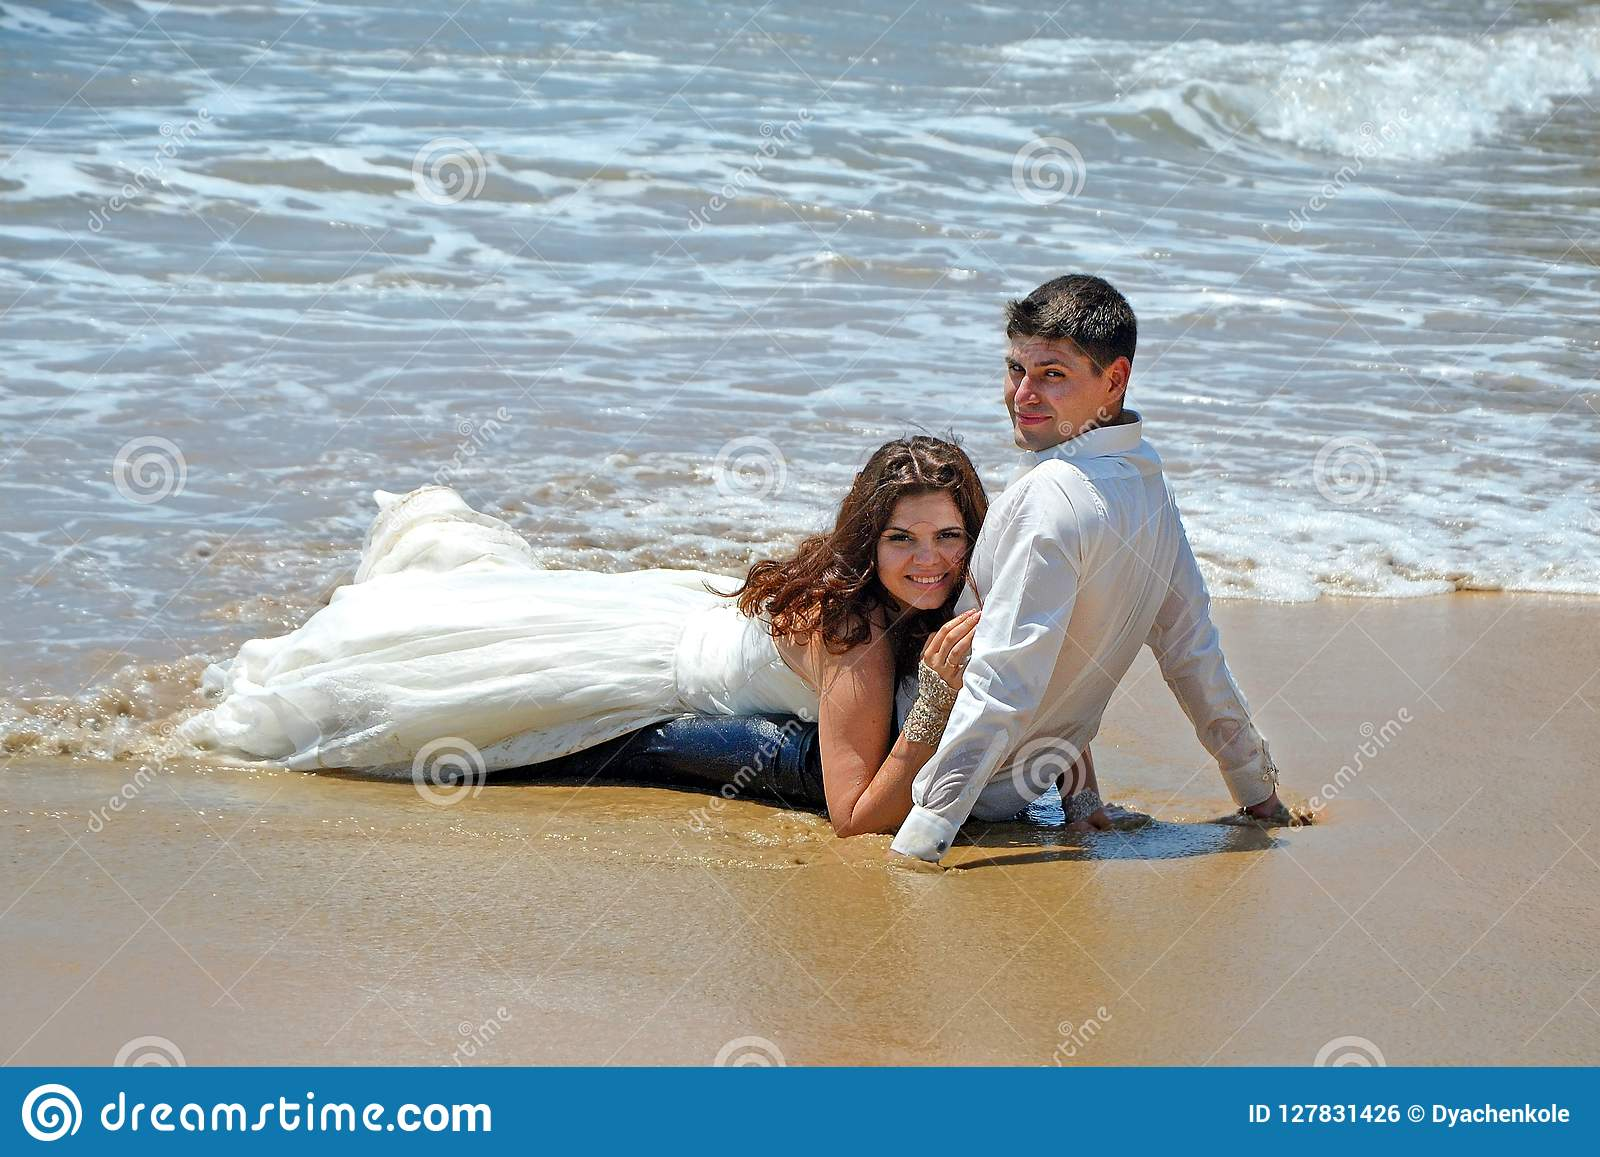 A married couple is lying on the sand on the beach of the Indian Ocean. Wedding and honeymoon in the tropics on the island